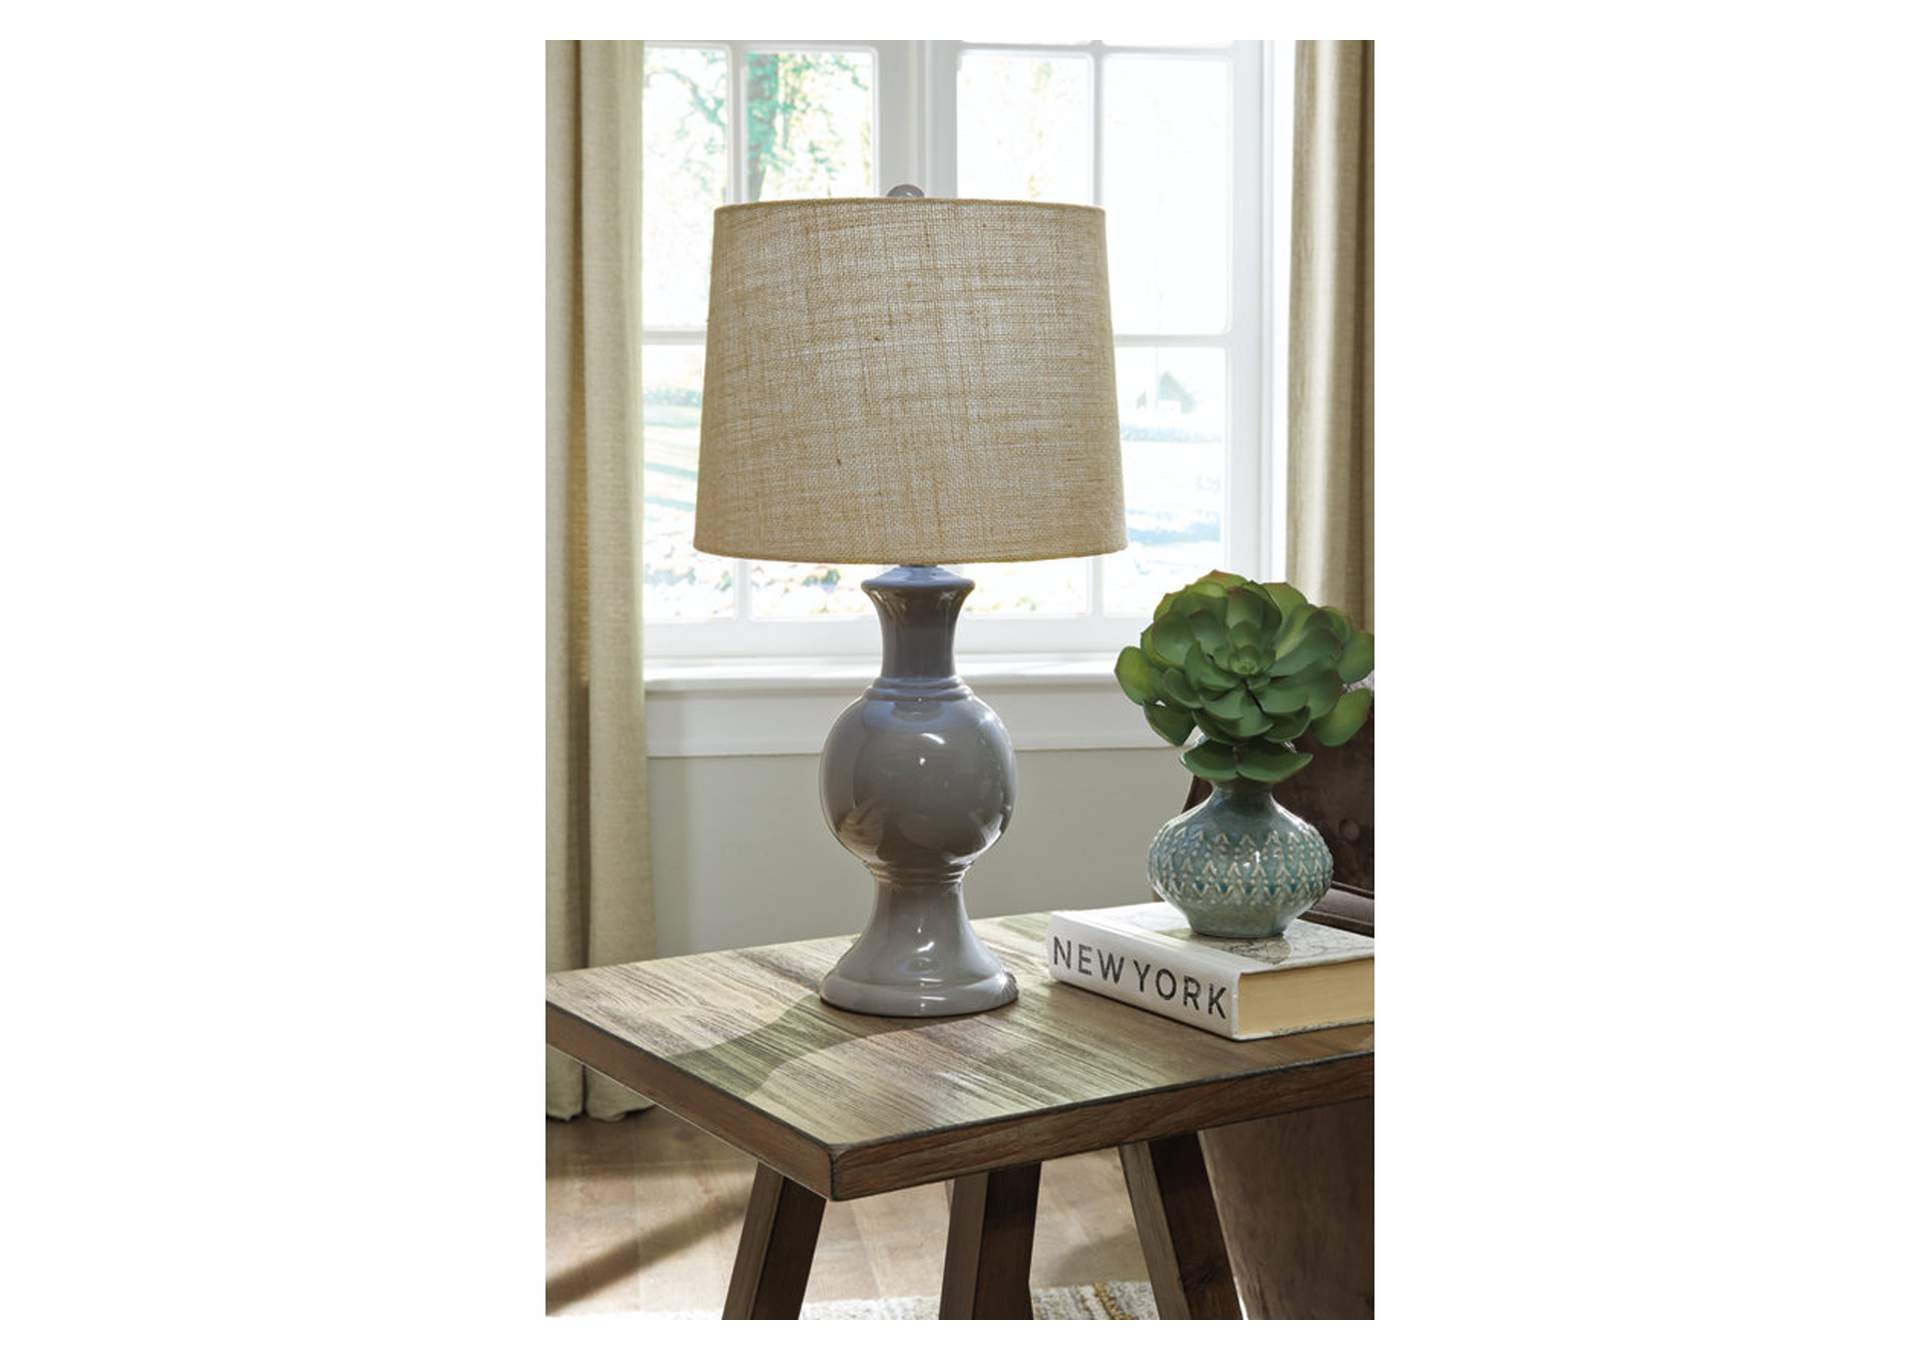 Magdalia Gray Ceramic Table Lamp,Signature Design By Ashley